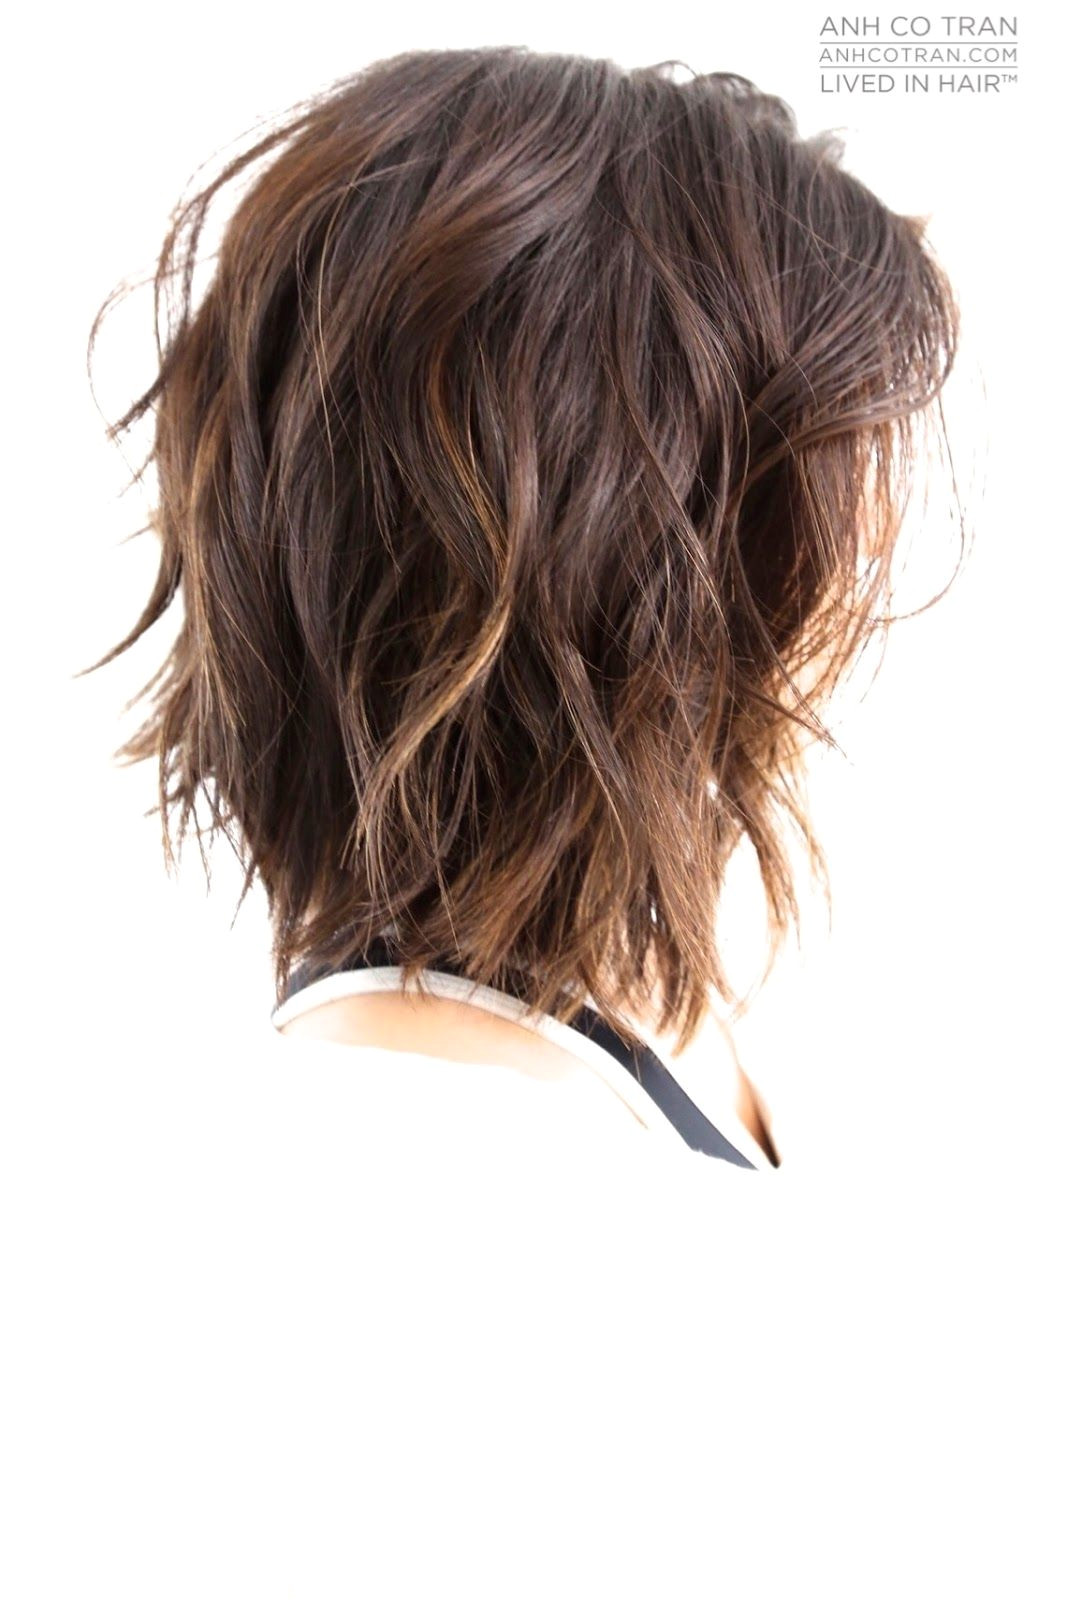 Bob Hairstyles for Round Faces and Thick Hair Anh Co Tran Cabelos Pinterest